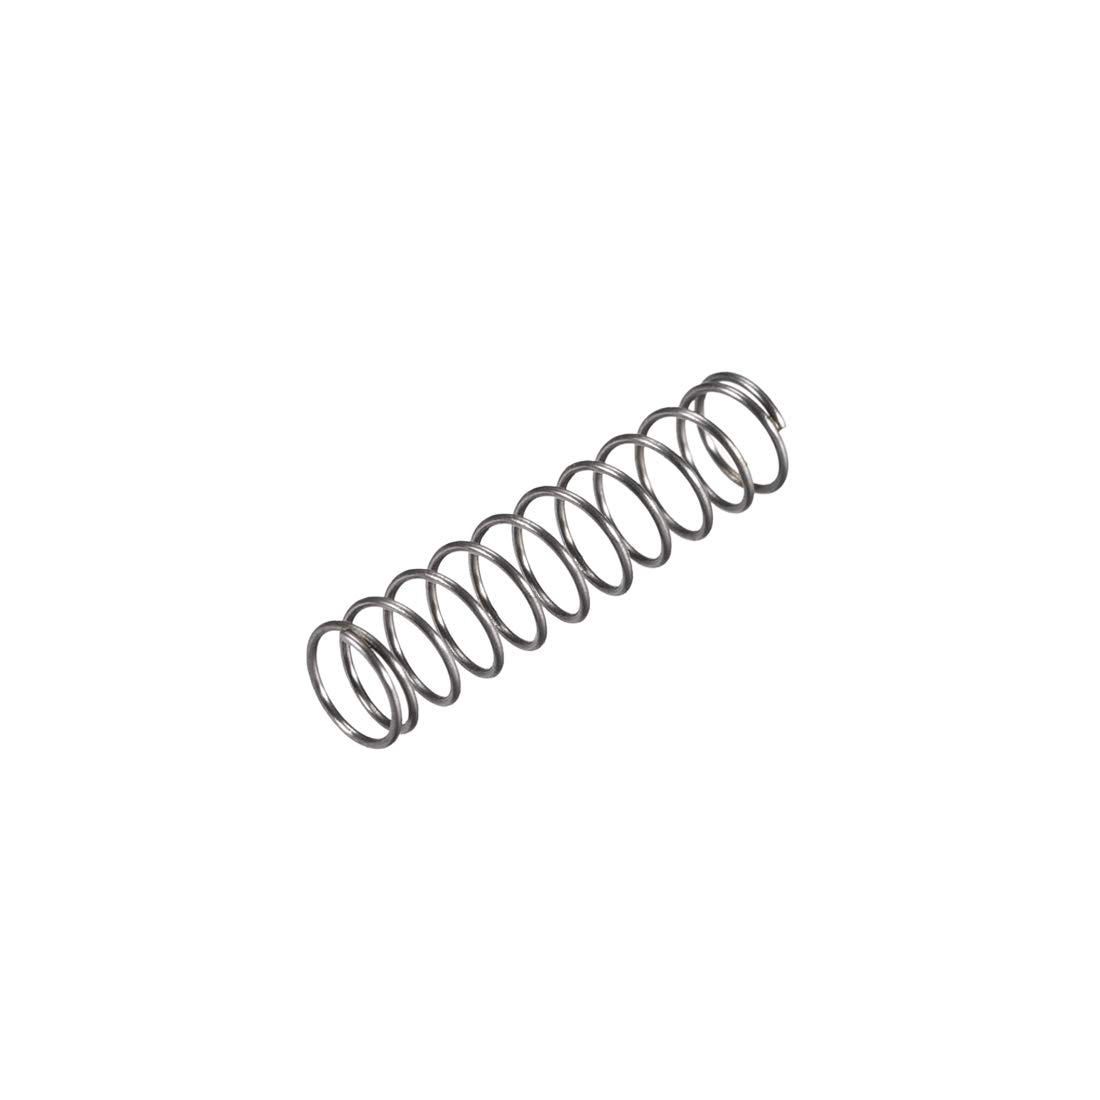 uxcell Compression Spring,6mm OD, 0.5mm Wire Size, 13.75mm Compressed Length, 25mm Free Length,8N Load Capacity,Gray,20pcs